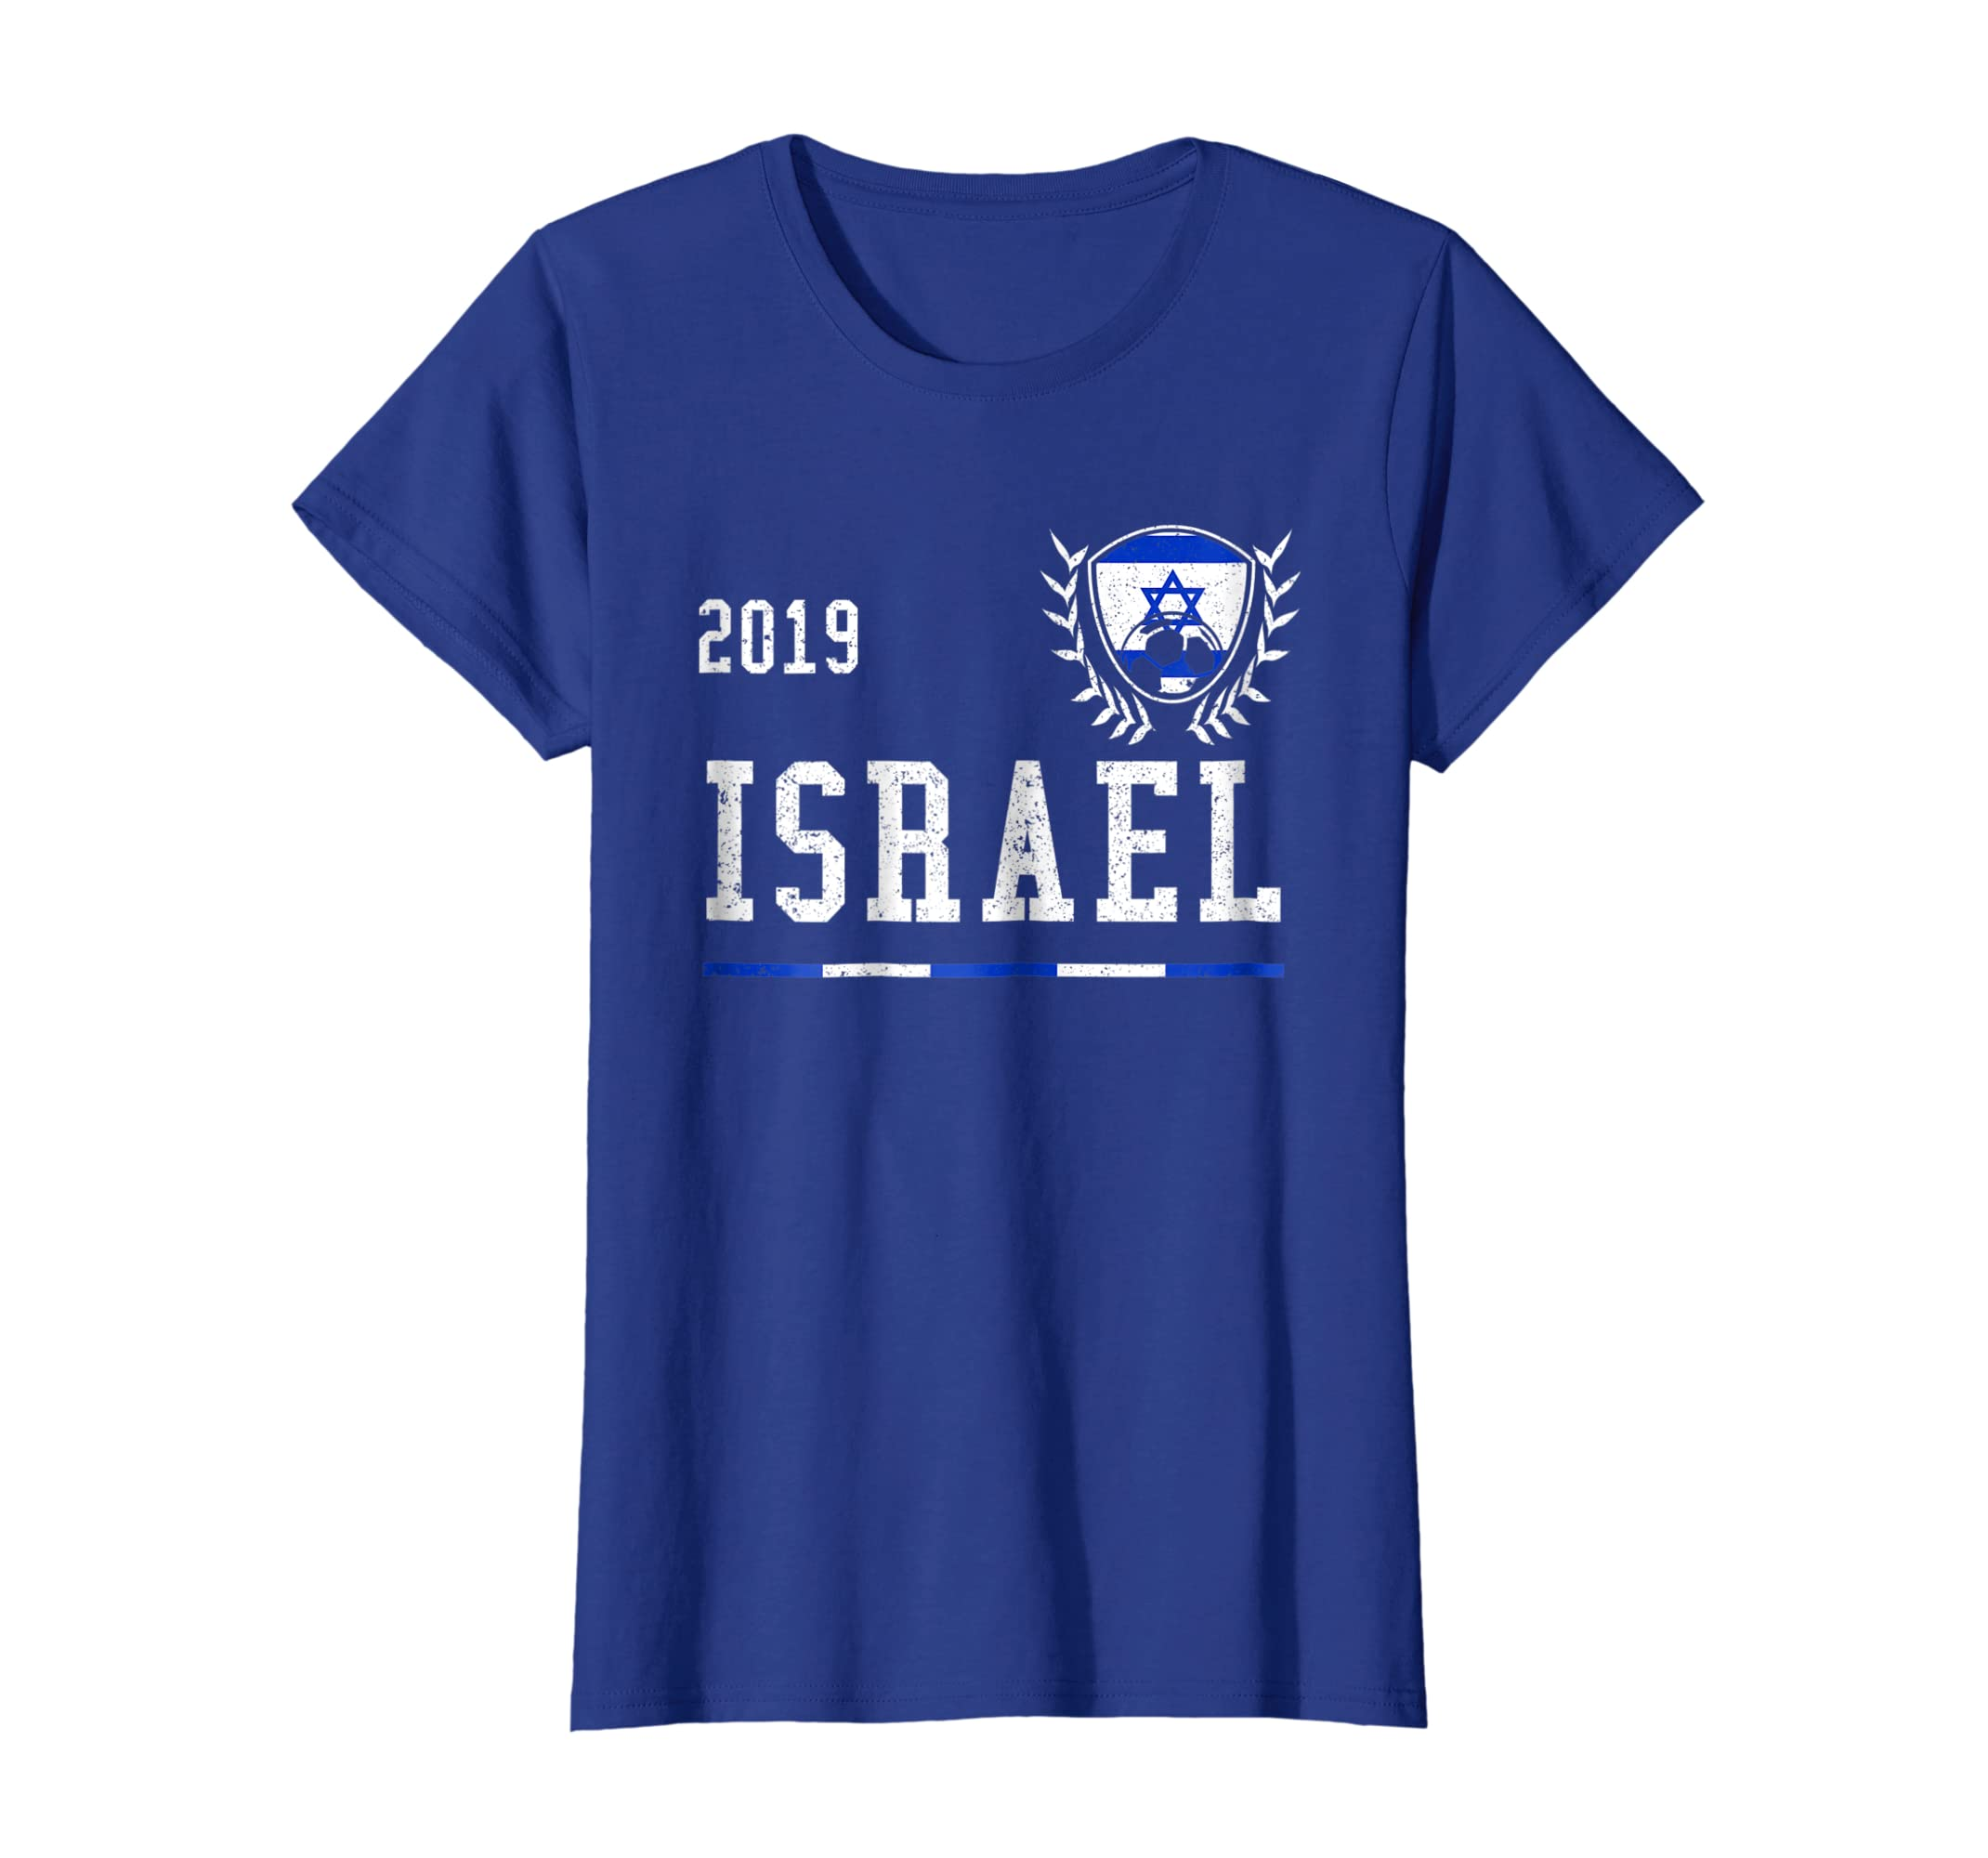 483349e80 Amazon.com  Israel Football Jersey 2019 Israelite Soccer T-shirt  Clothing